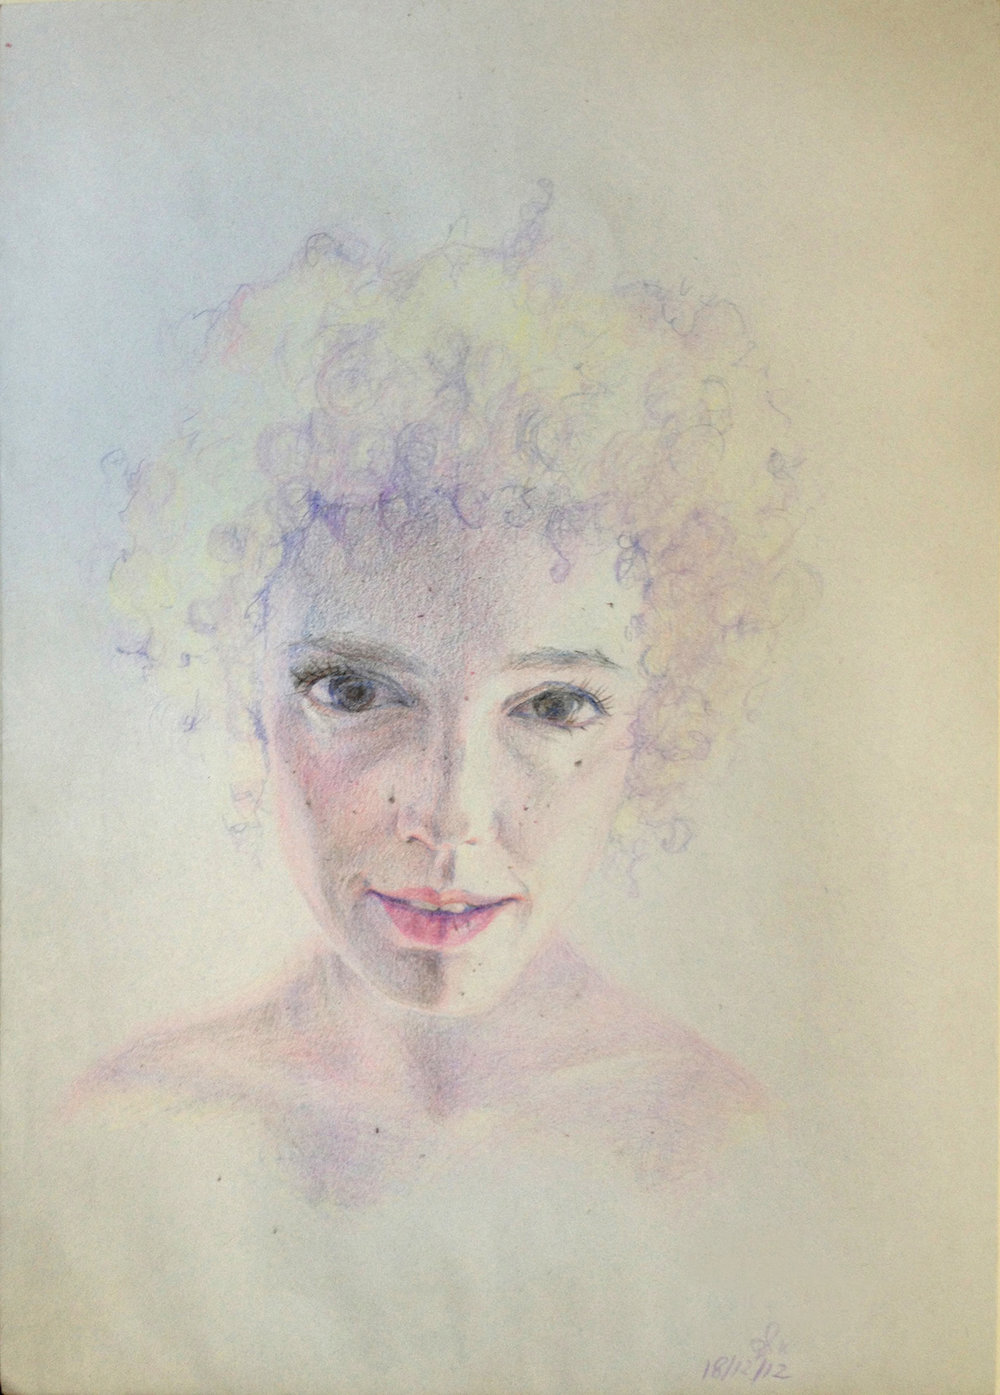 Mika Sade,2012,colored pencil on paper,210x297 mm